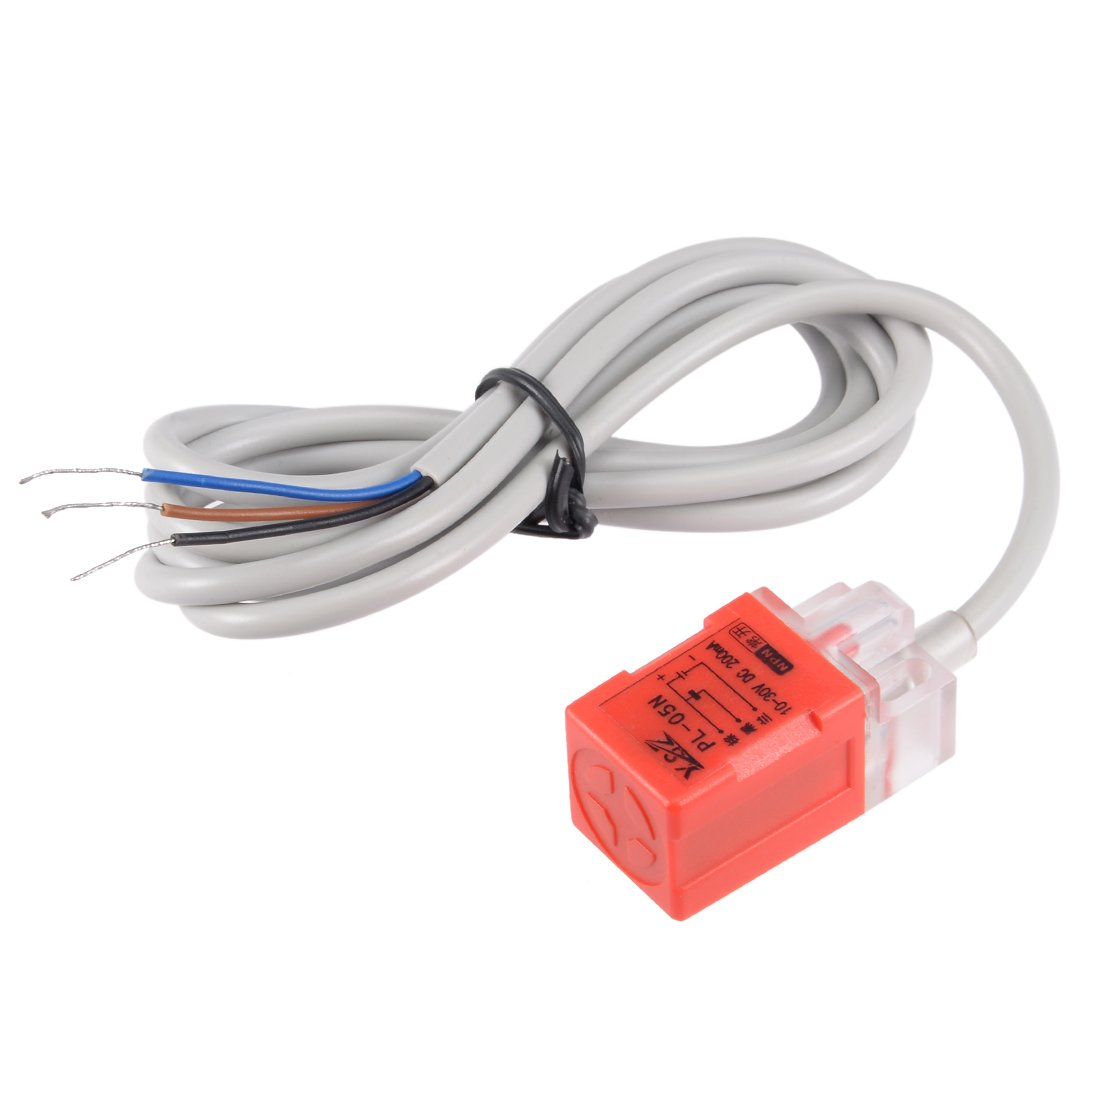 Uxcell 5mm Inductive Proximity Sensor Switch Detector Npn No Dc 10 3 Wire Wiring Diagram 30v 200ma Pl 05n Industrial Scientific